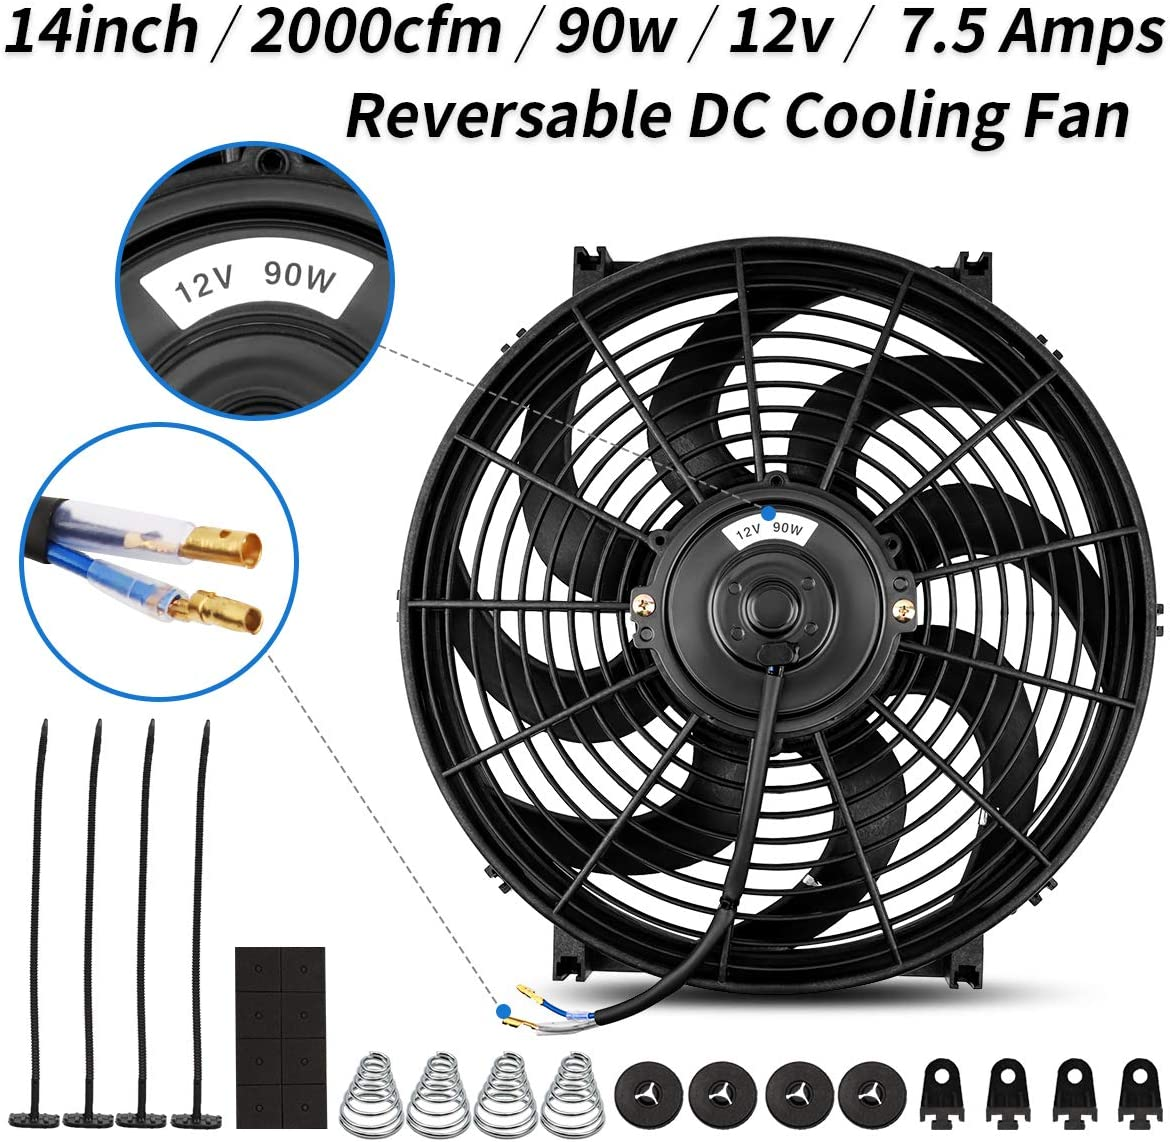 Universal High Performance Reversible 14 Inch Engine Radiator Cooling Fan with Mounting Kit 2000 CFM 12 Volts 7.5 Amps 90 Watts